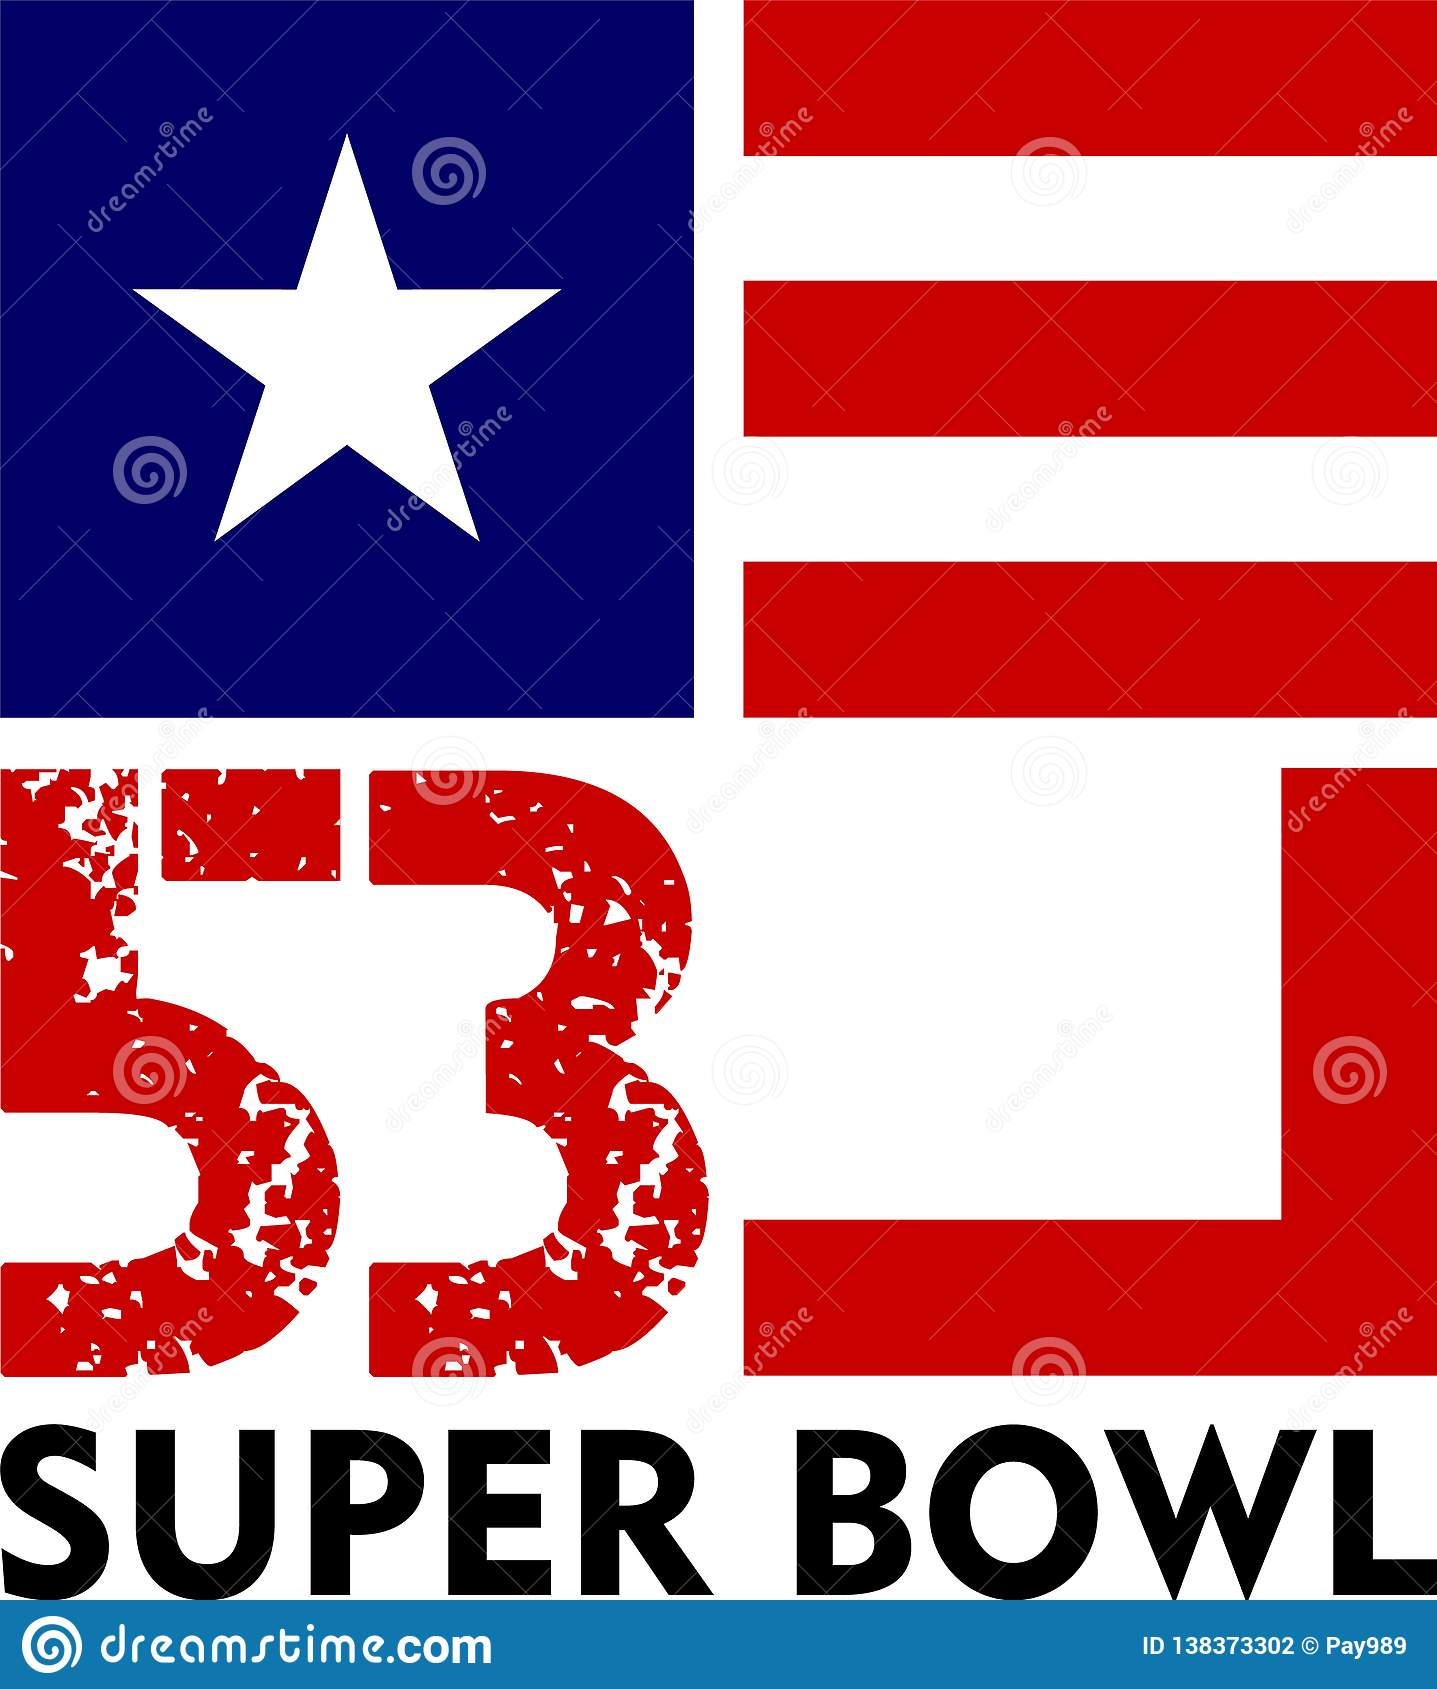 Super Bowl 53 stock illustration. Illustration of vector - 138373302 62ac5afb7